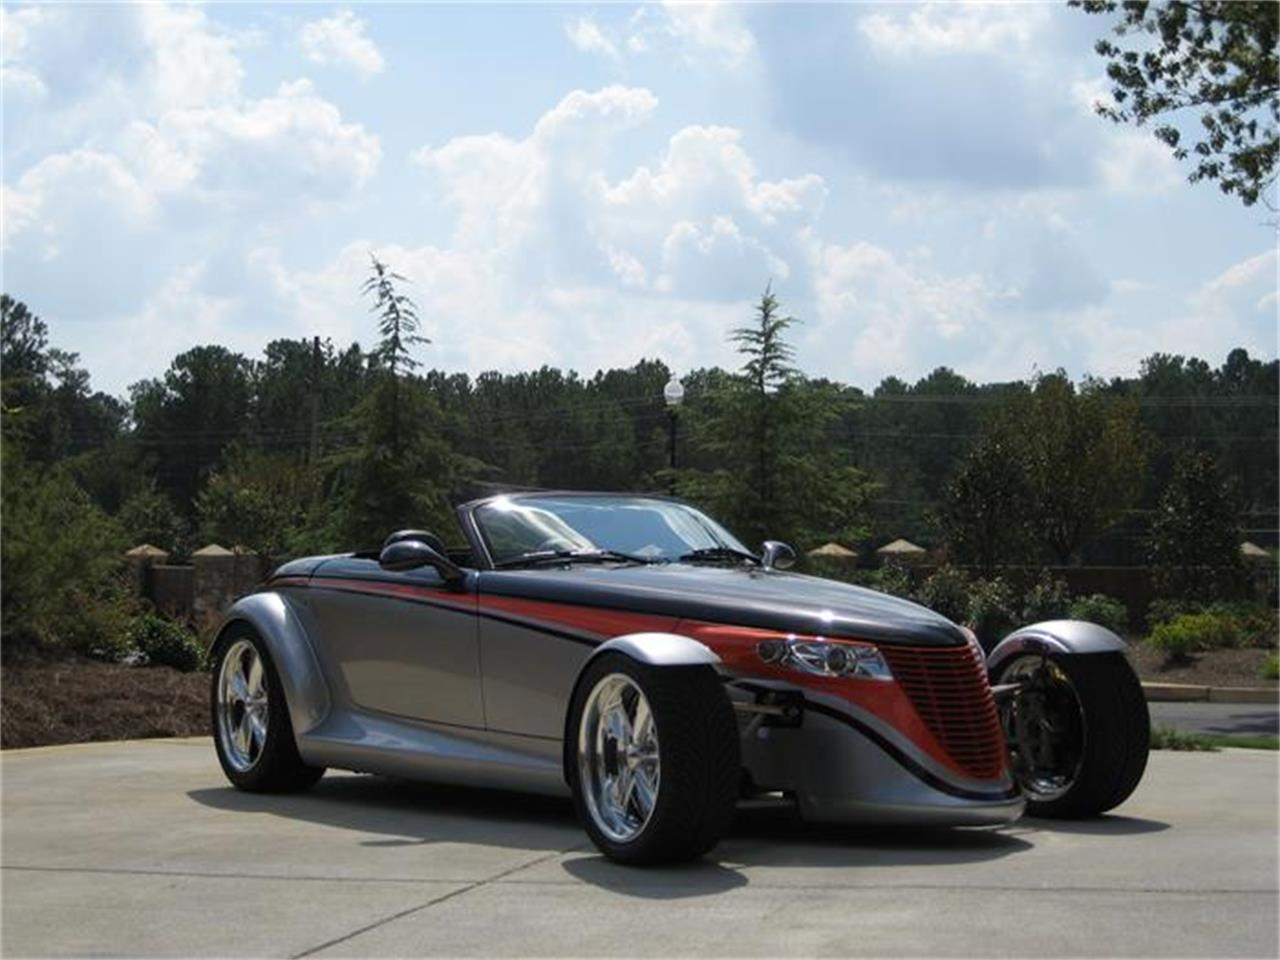 Large Picture of 1999 Chrysler Prowler located in Butler Pennsylvania - $89,900.00 Offered by Bantam City Rods - ARNS